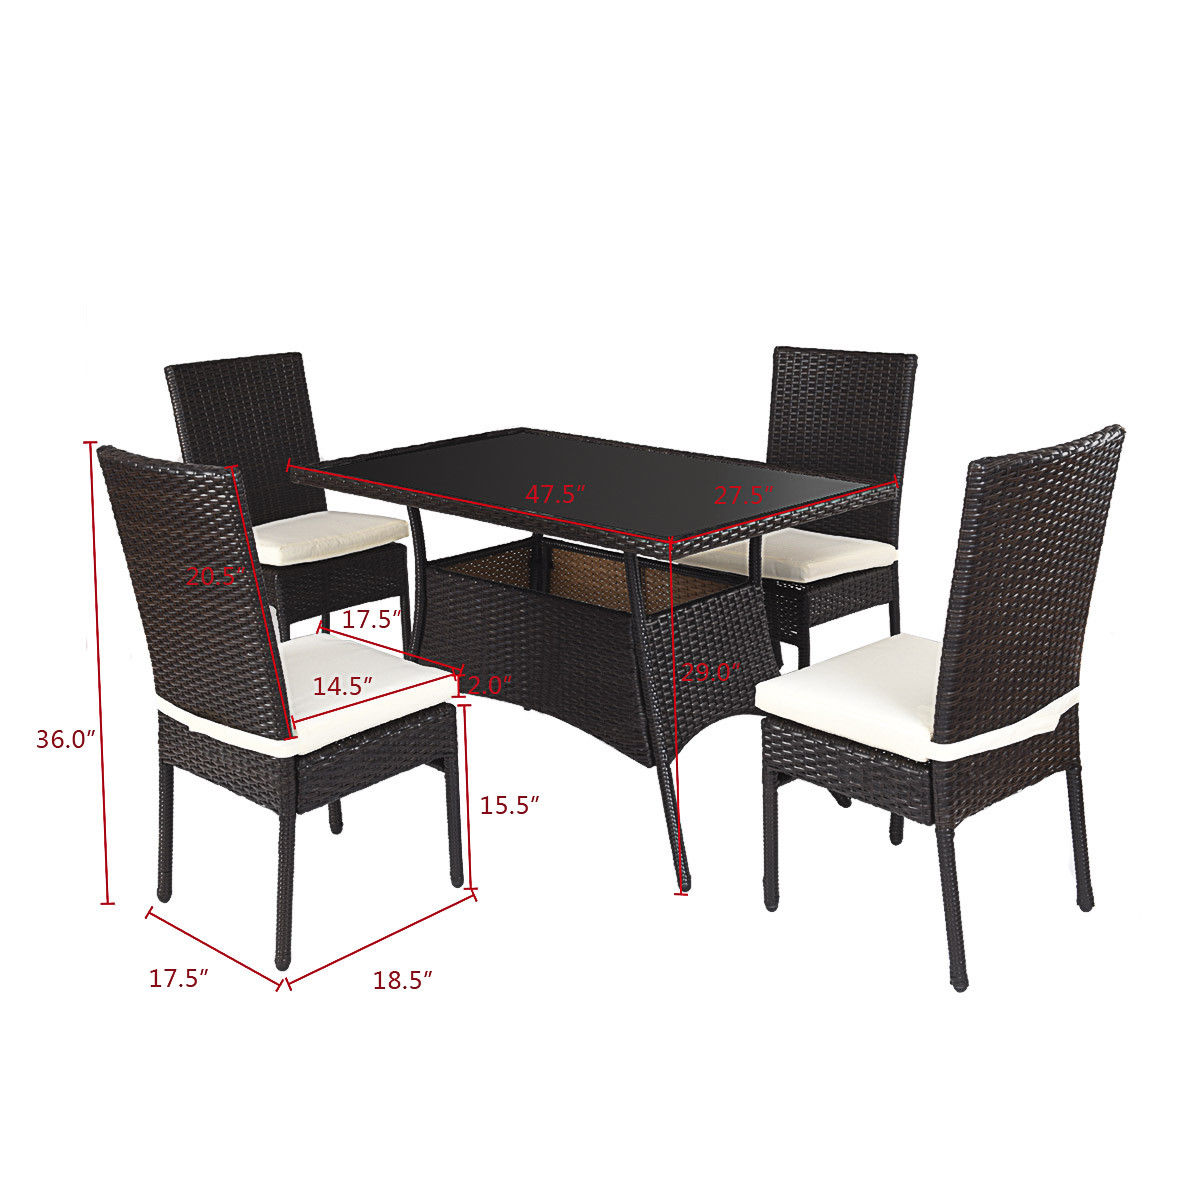 Rattan Table Costway 5 Piece Outdoor Patio Furniture Rattan Dining Table Cushioned Chairs Set